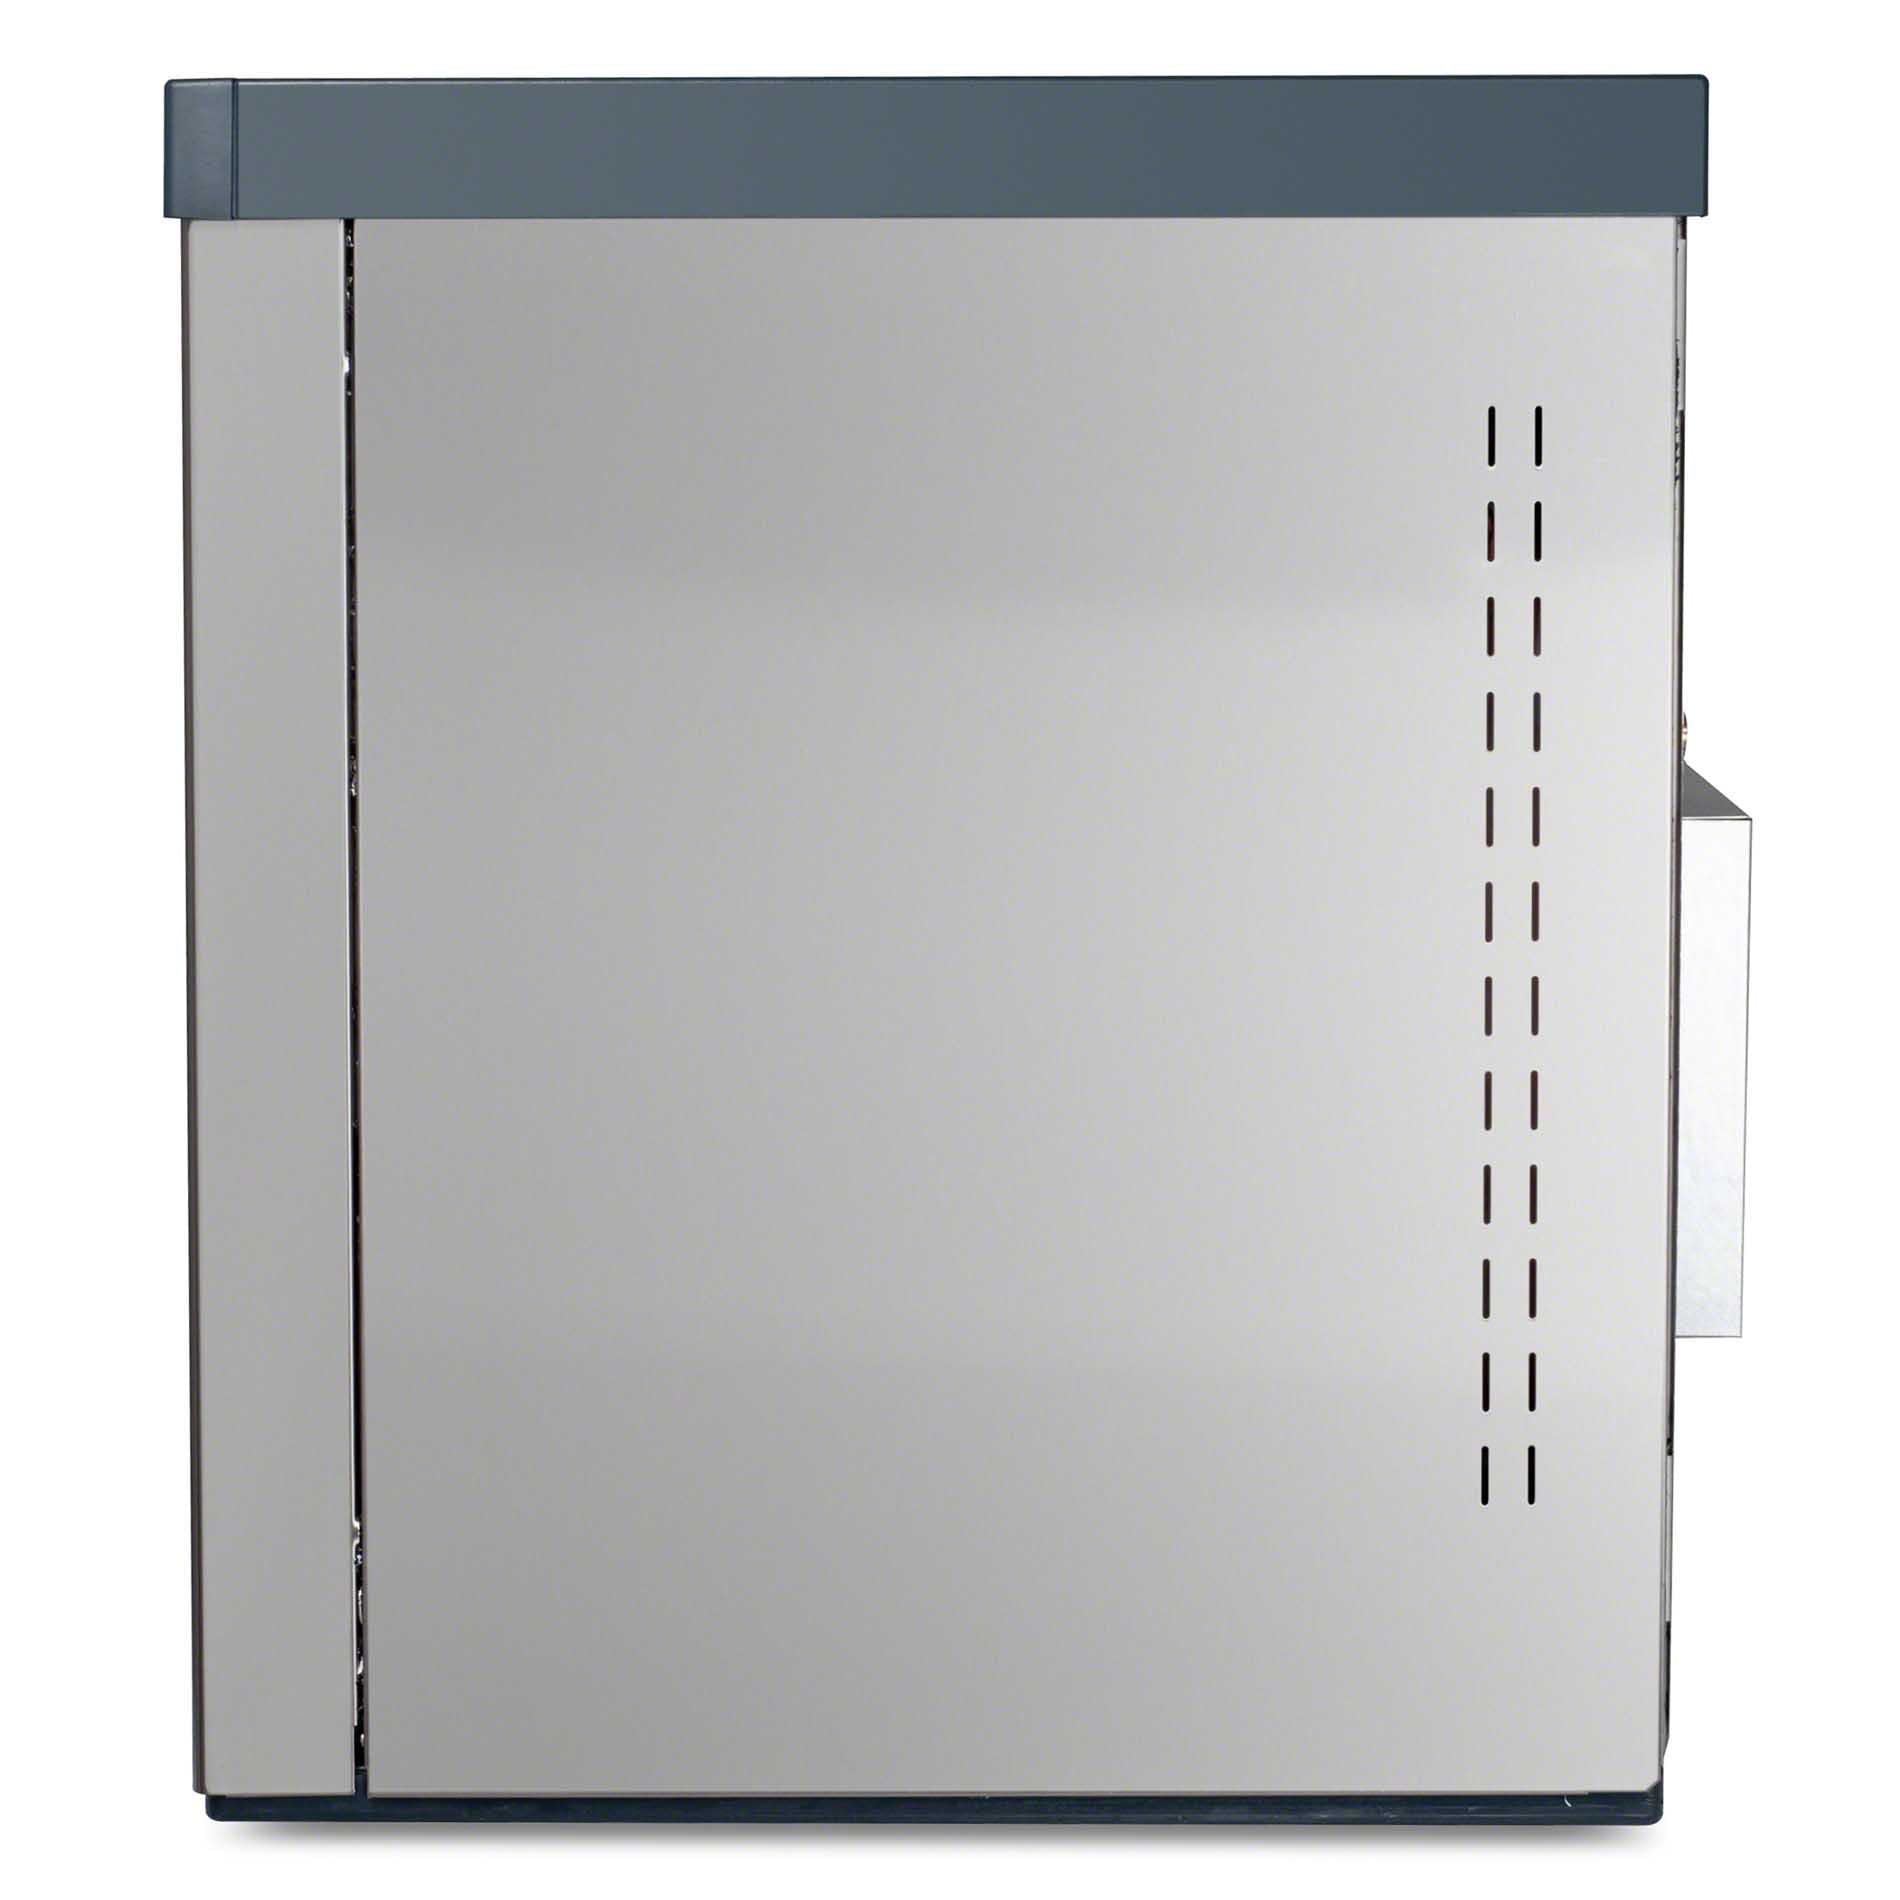 Scotsman - C1848MR-32A 1828 lb Full Size Cube Ice Machine - Prodigy Series - sold by Food Service Warehouse